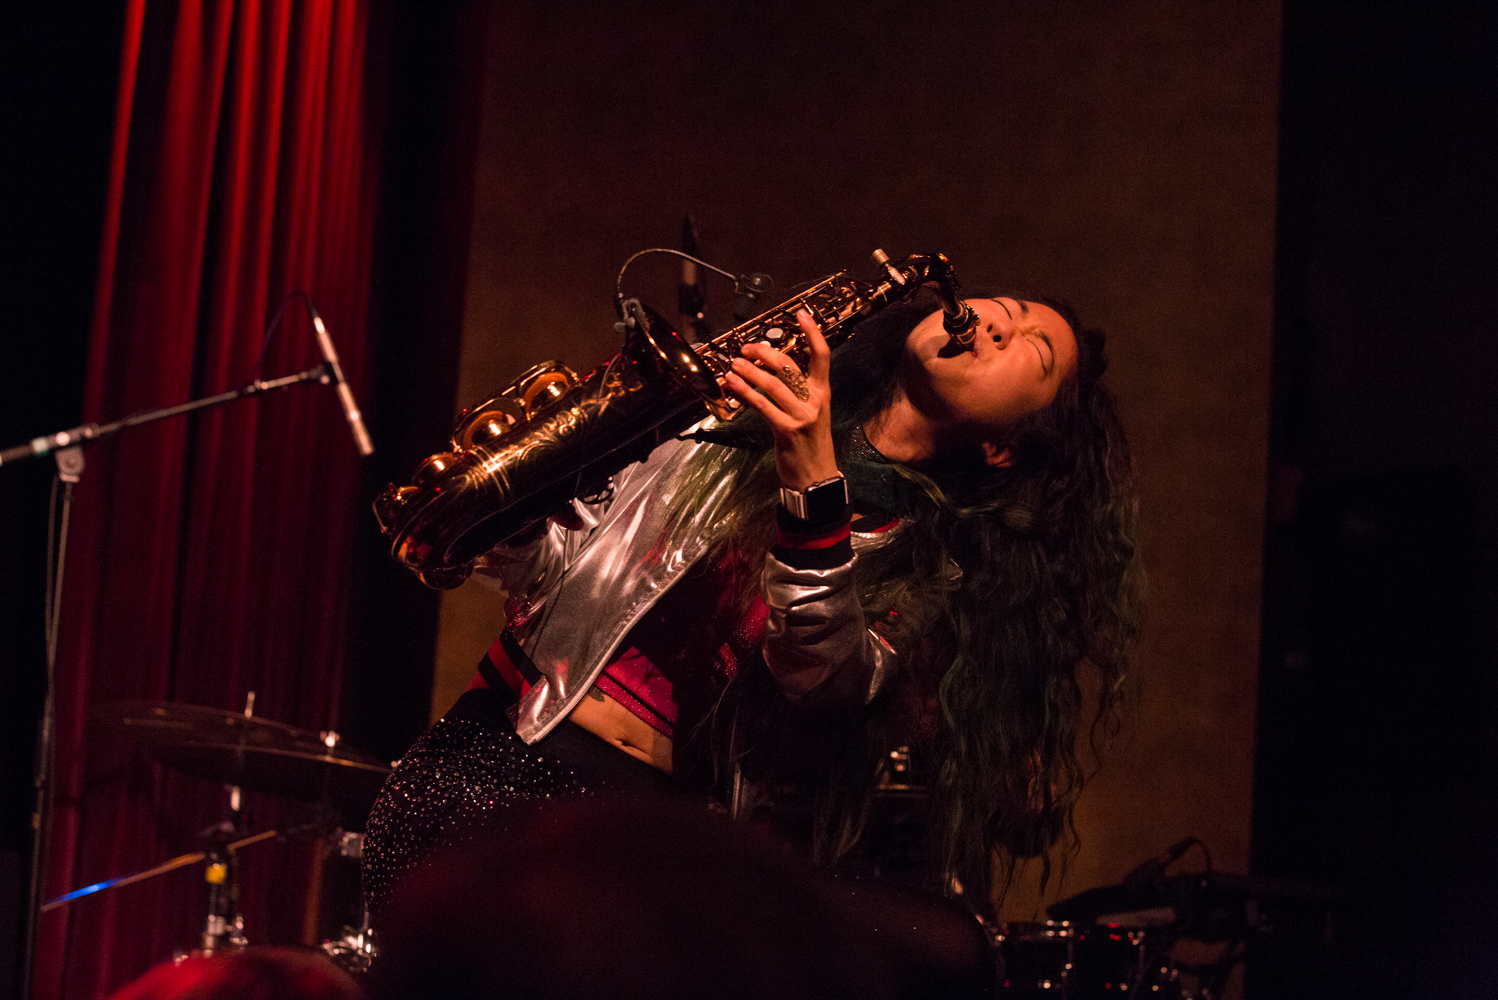 yoshis-oakland-music-show-grace-kelly-saxophonist.jpg